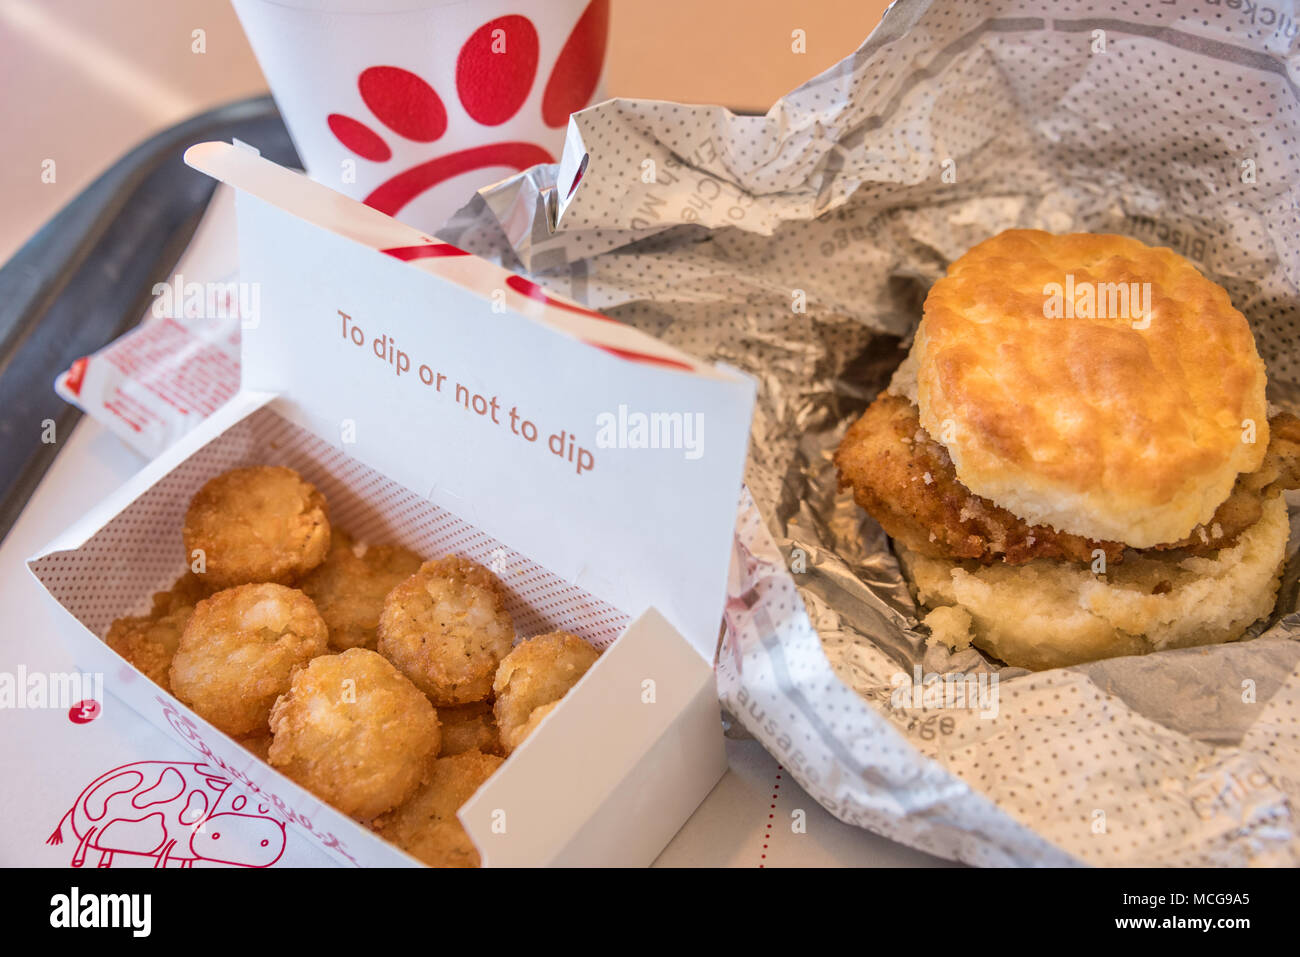 A classic chicken biscuit breakfast at Chick-fil-A, America's top-rated quick service restaurant. - Stock Image